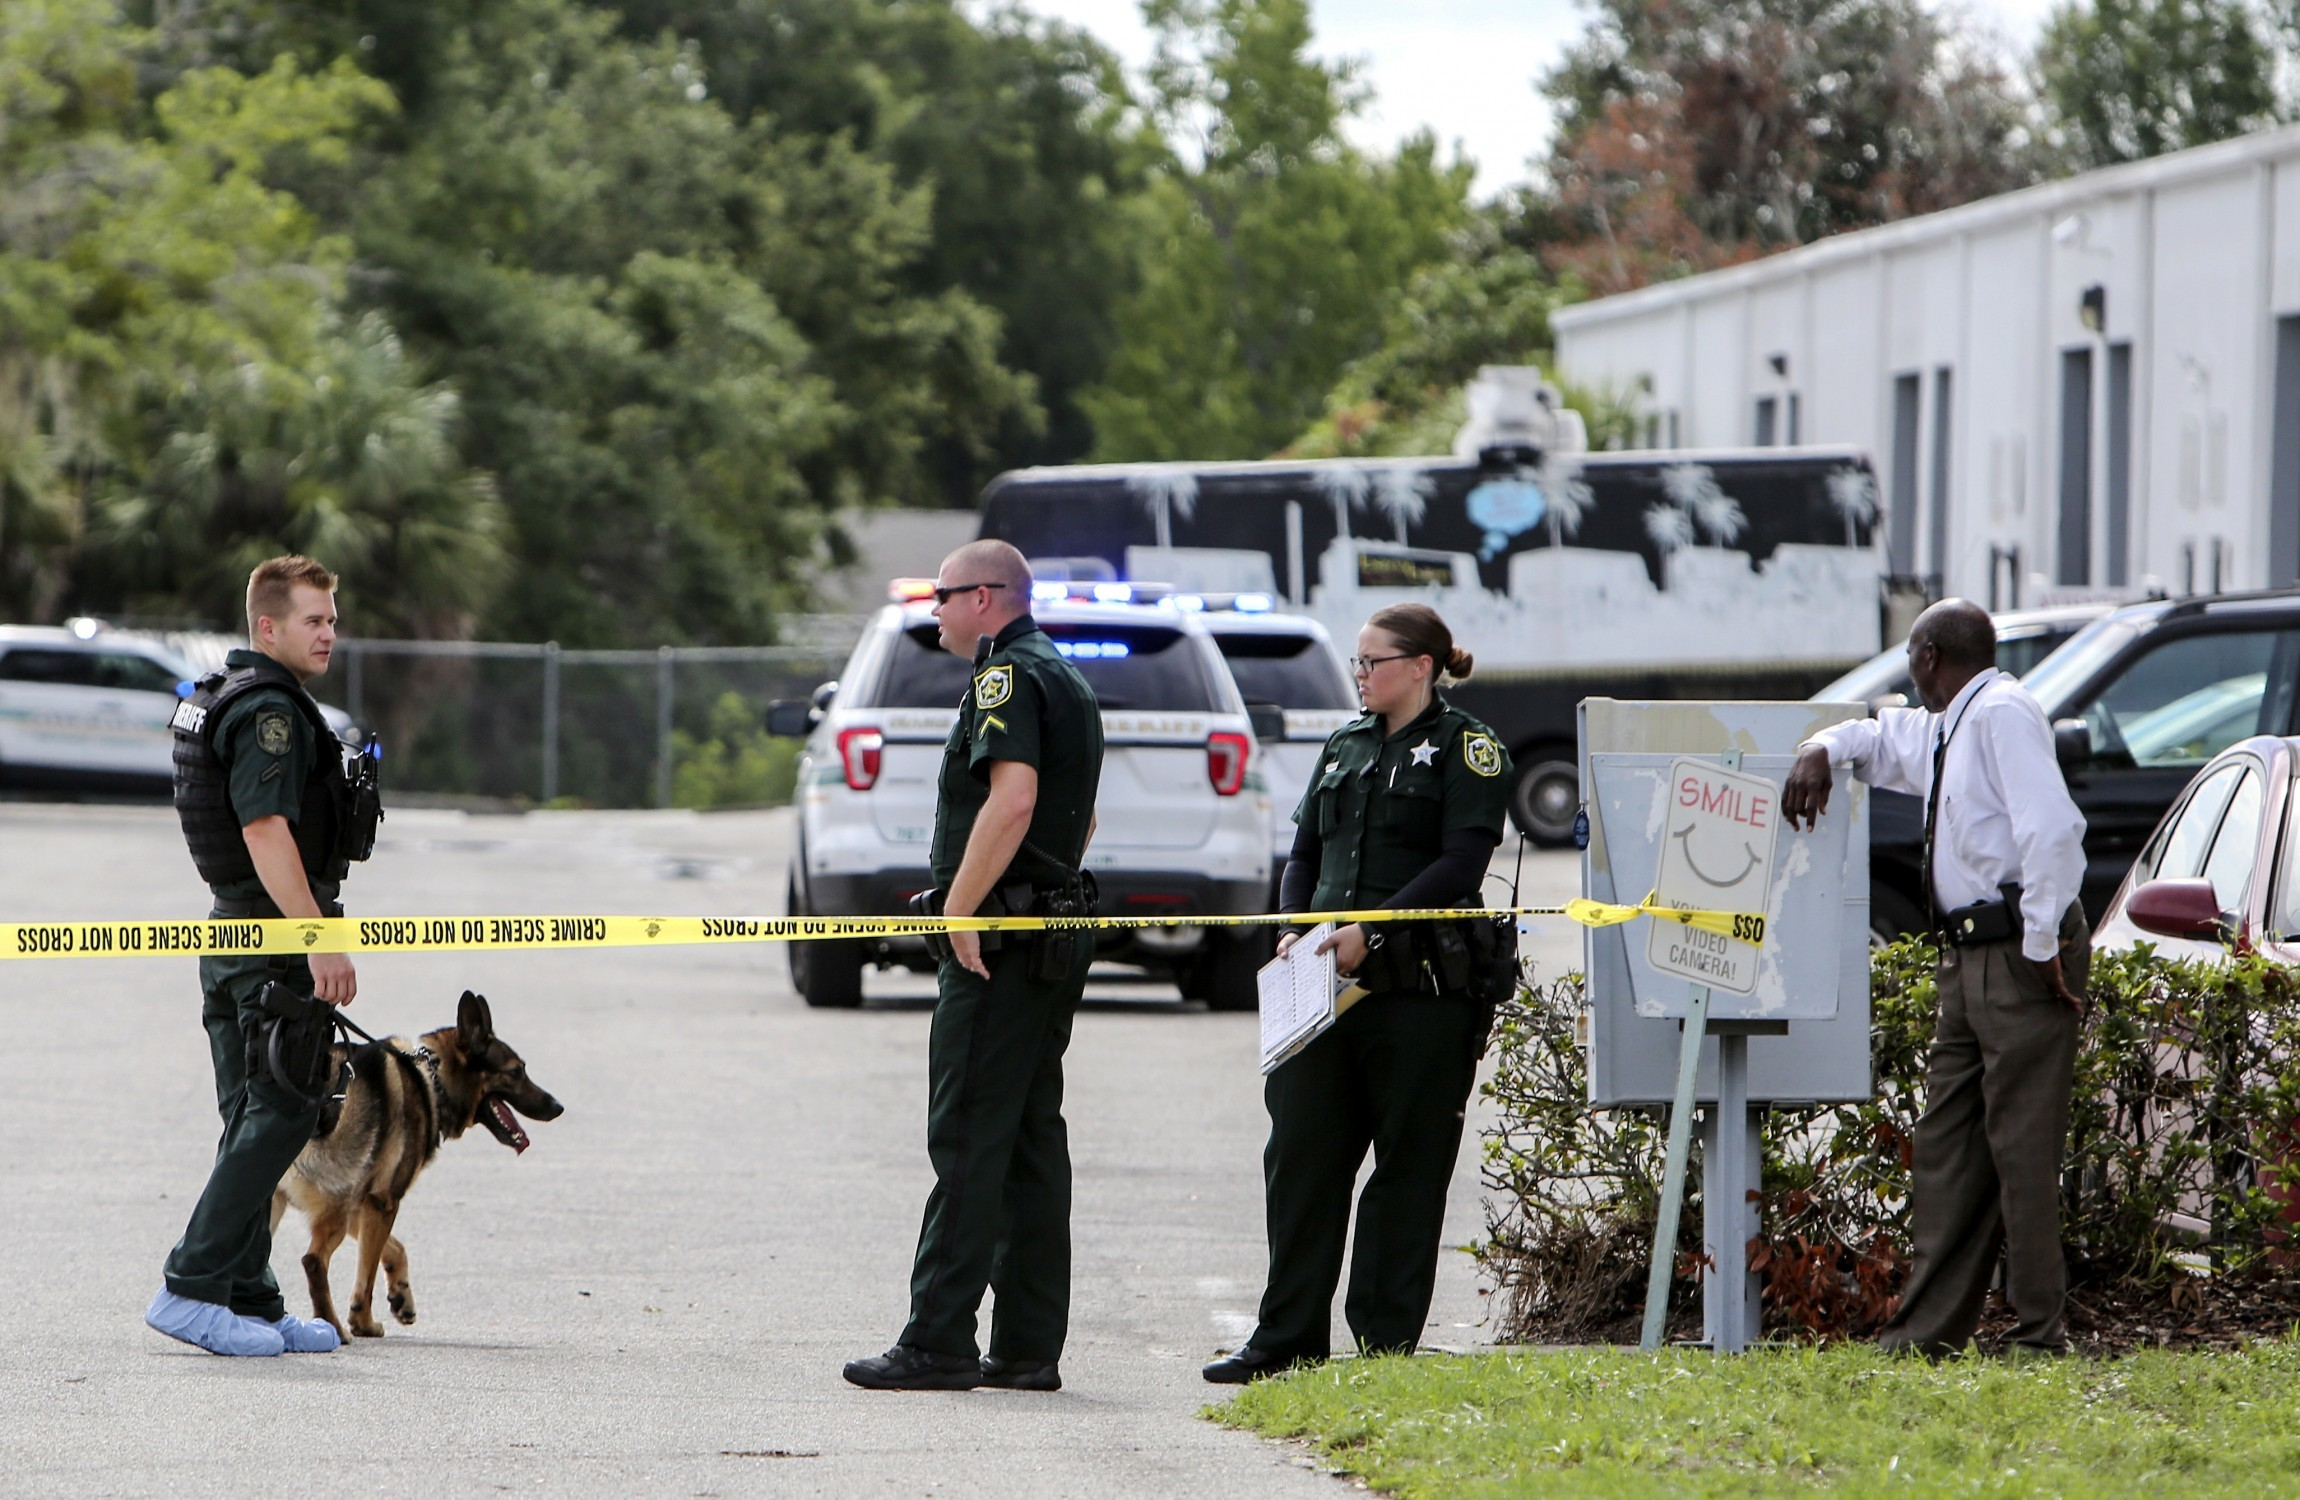 Disgruntled former employee kills 5 at Orlando workplace